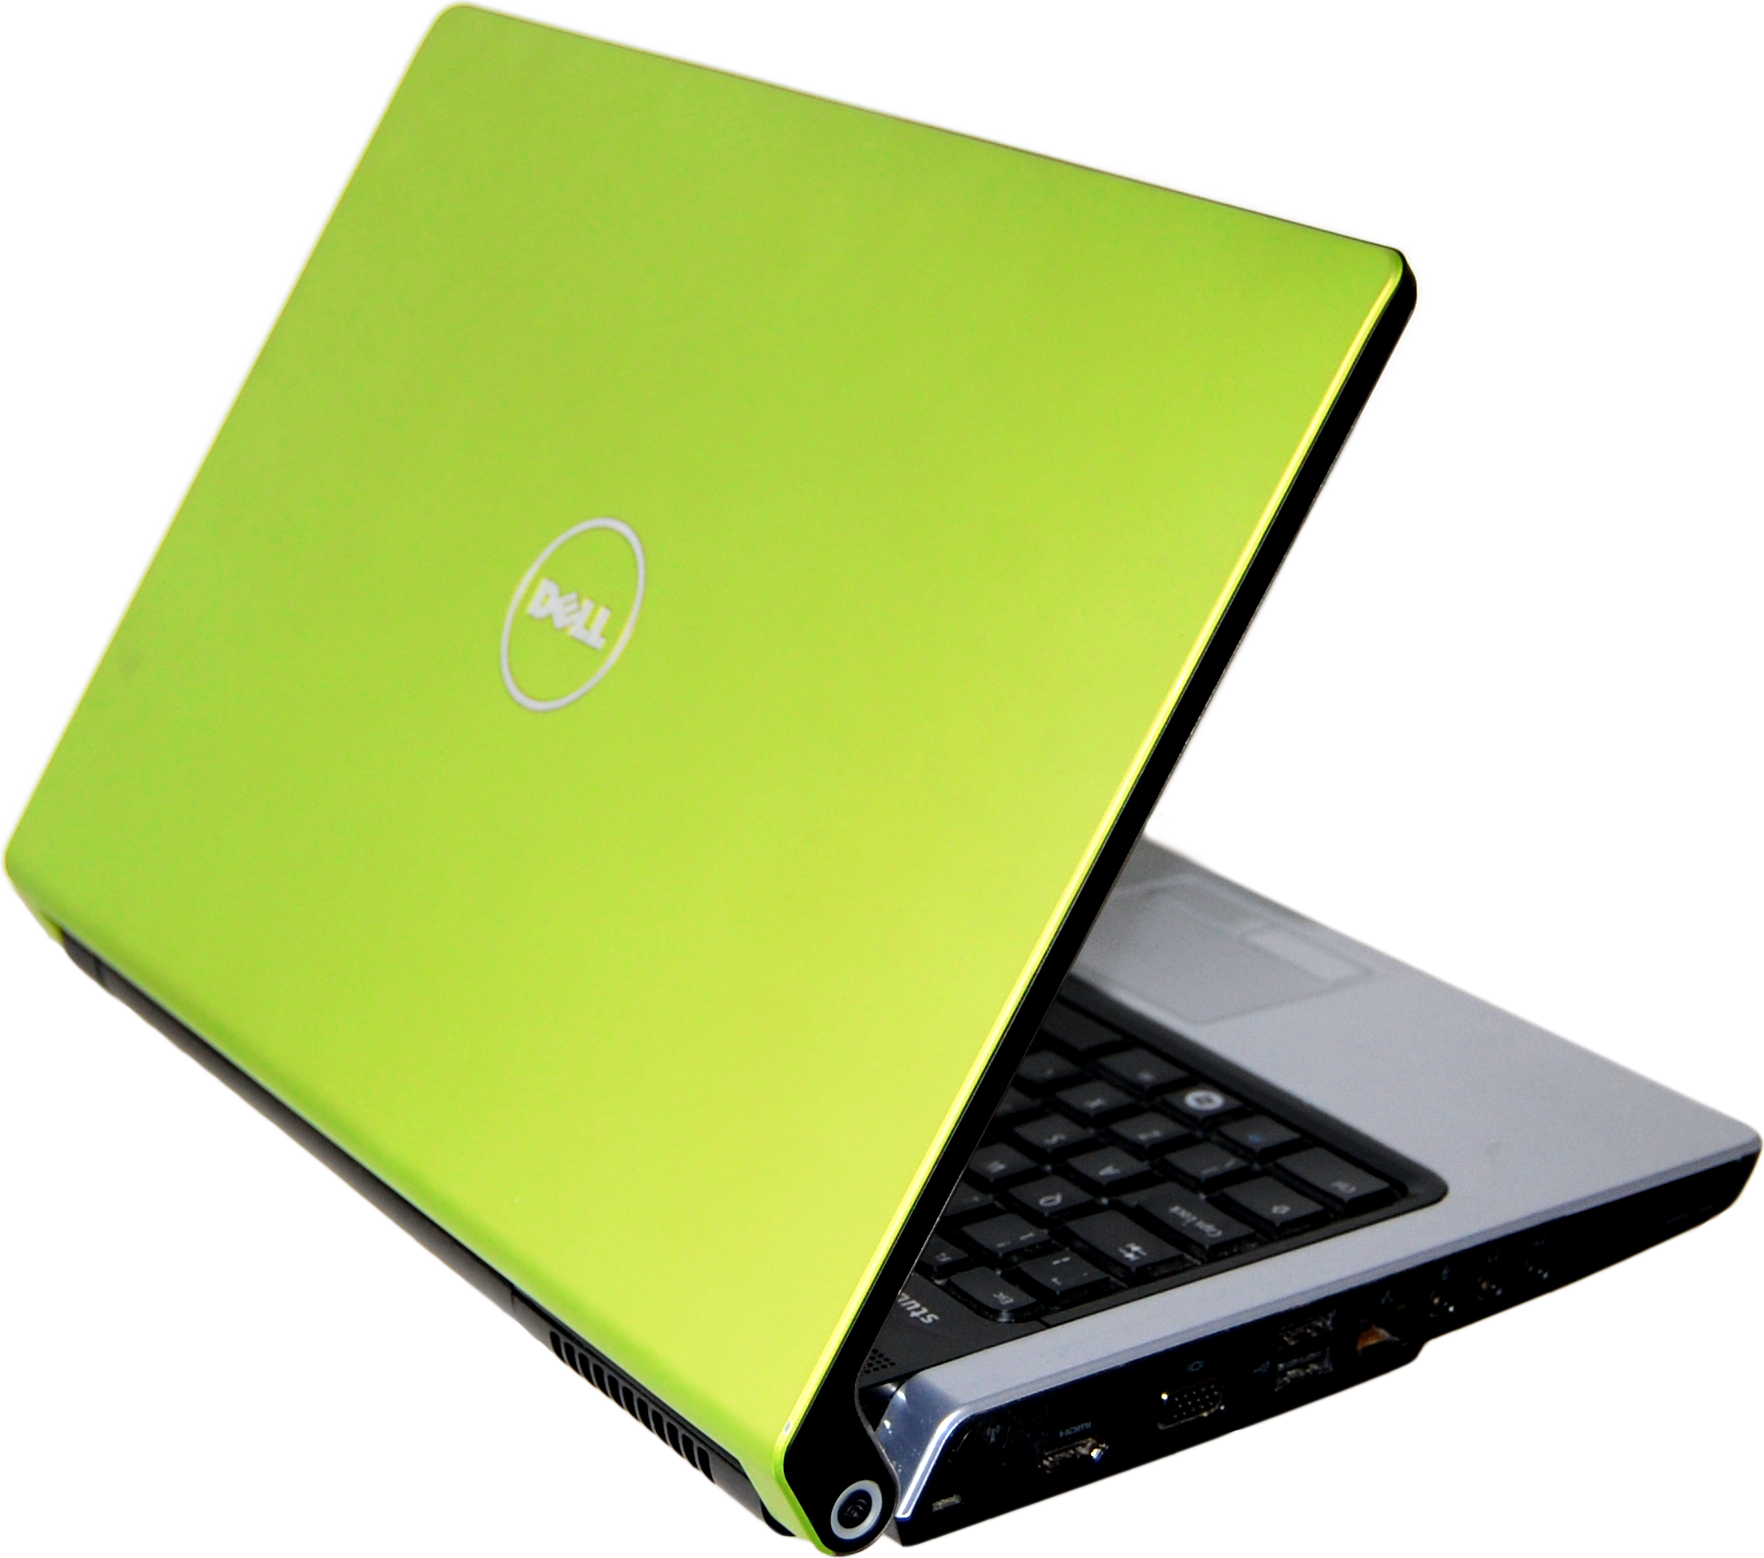 Laptops png images image. Notebook clipart green notebook